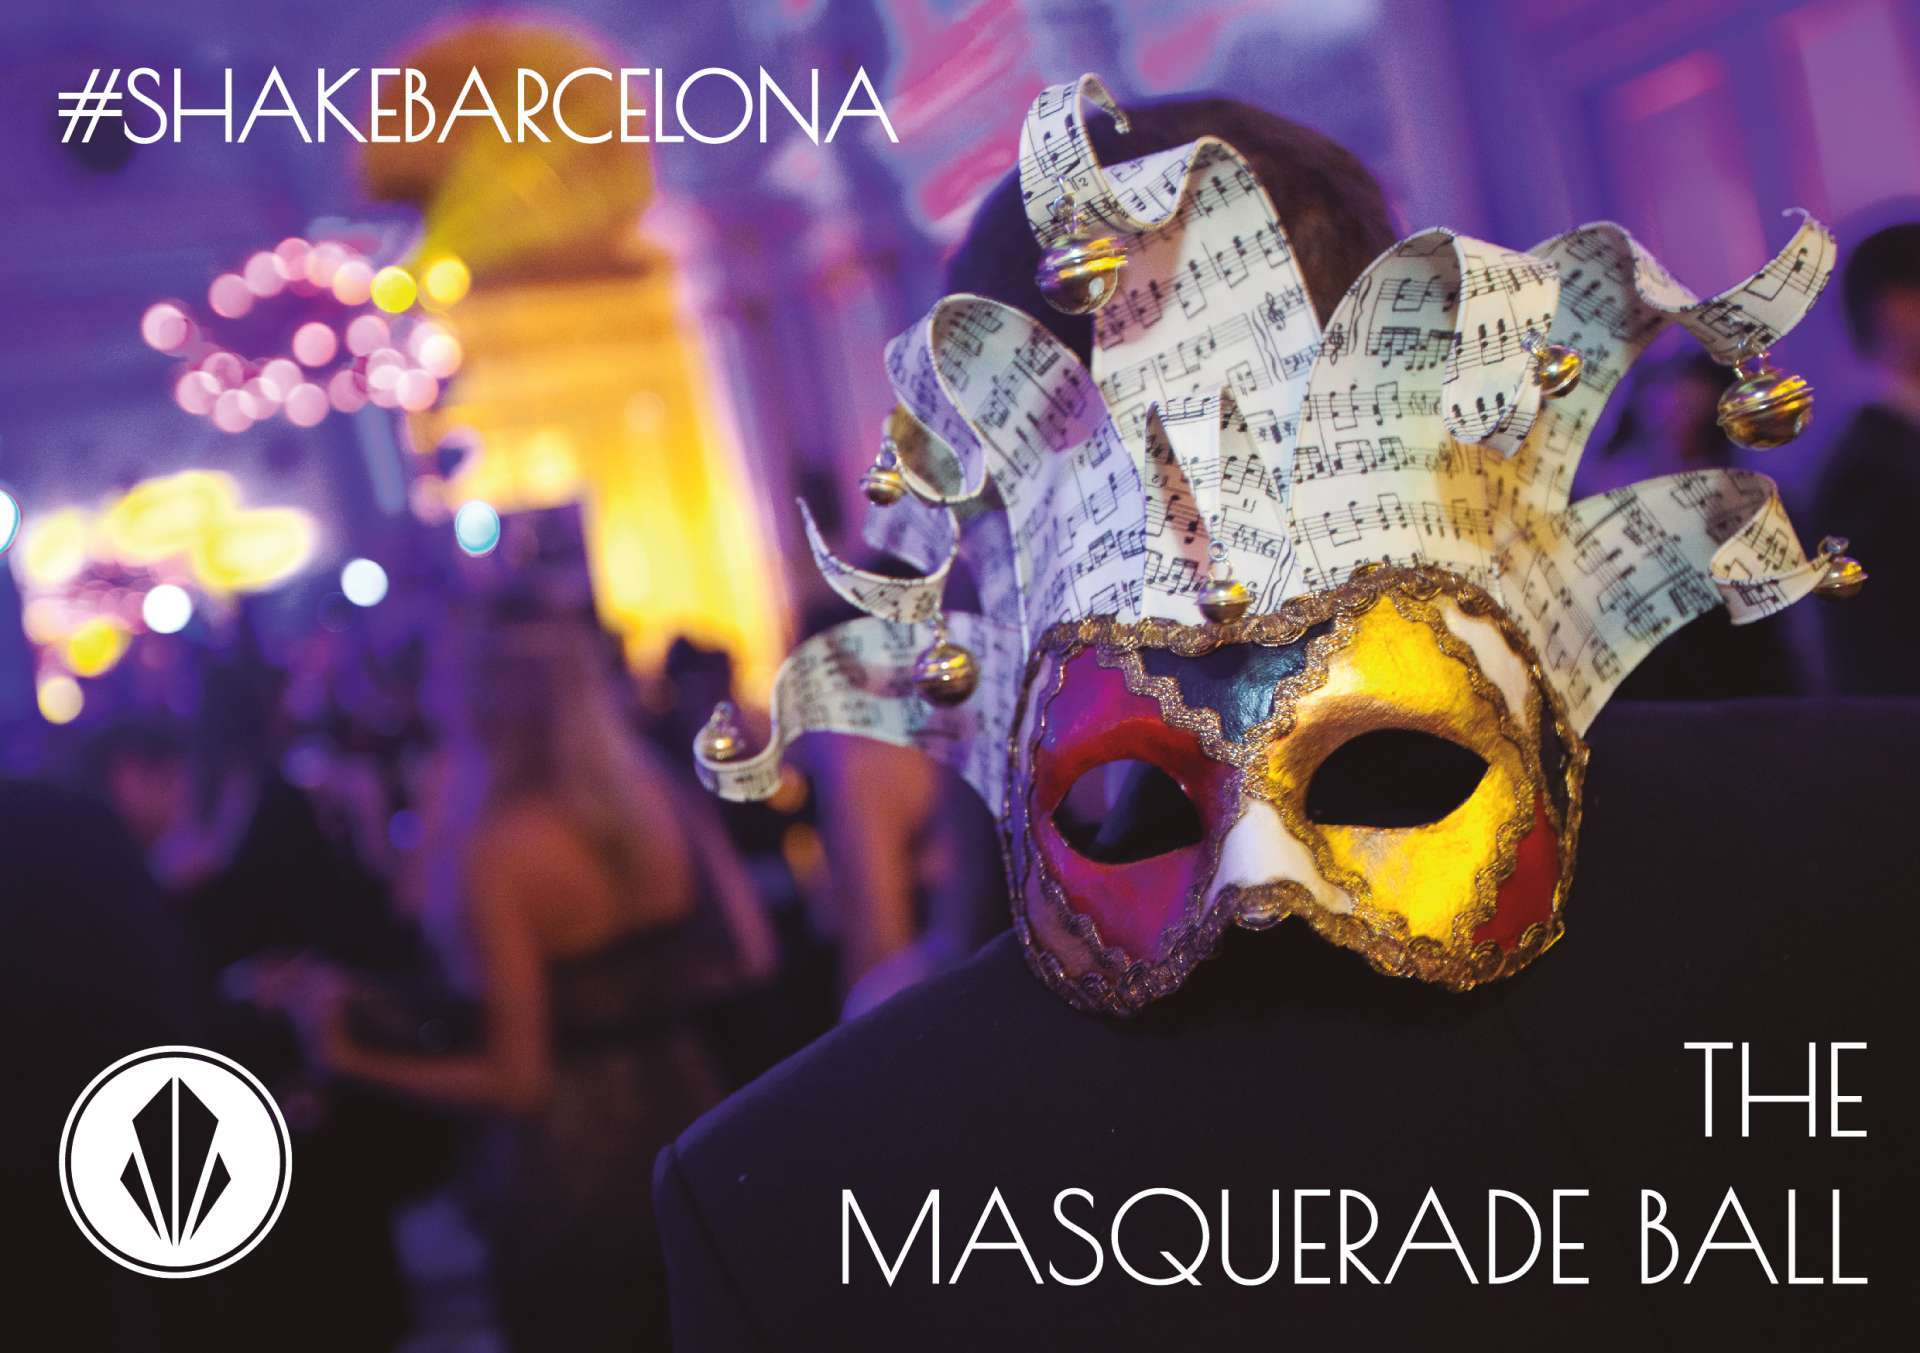 Masquerade Ball & Wine Tour Experience